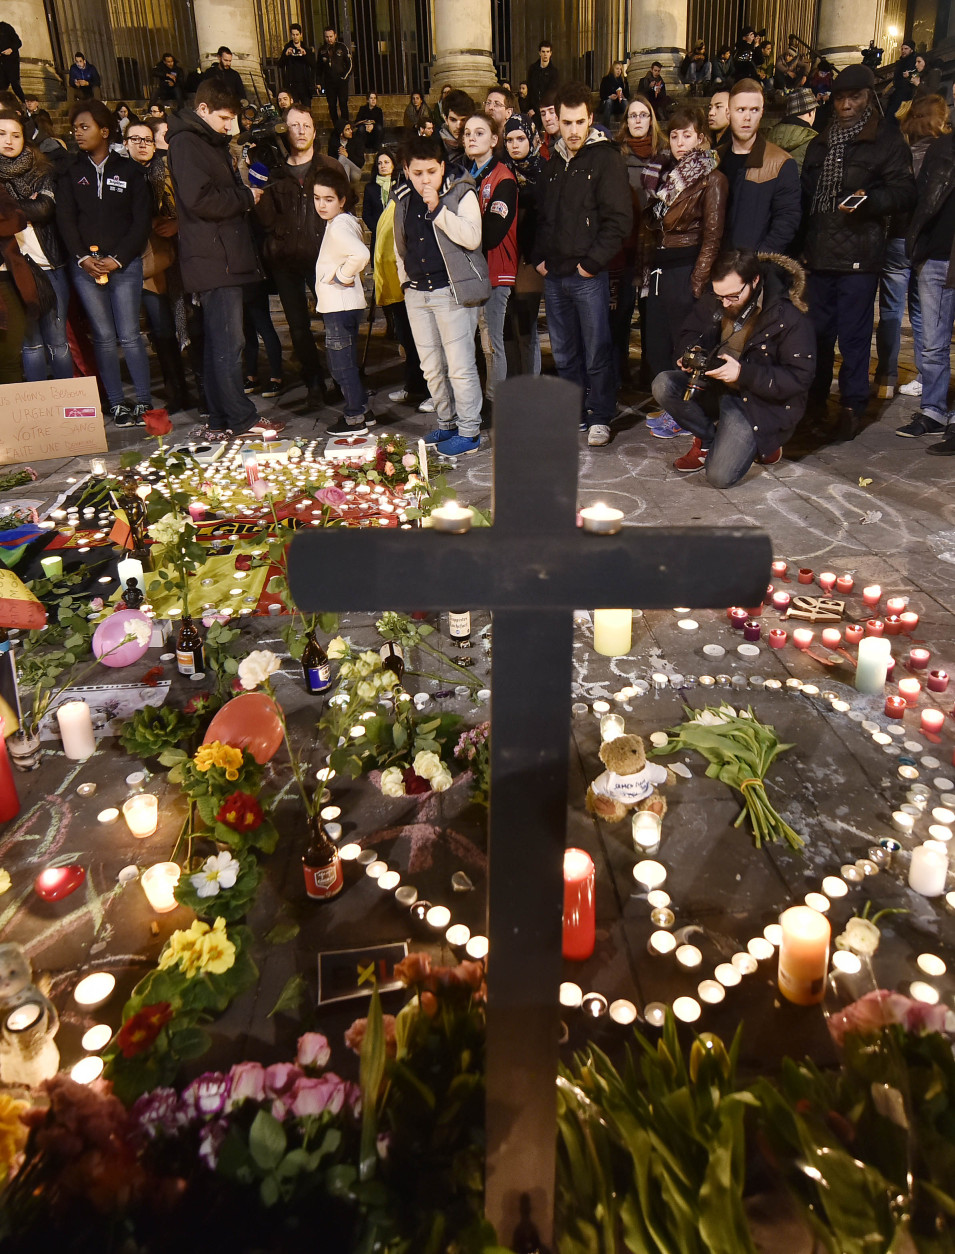 People bring flowers and candles to mourn for the victims at Place de la Bourse in the center of Brussels, Tuesday, March 22, 2016. Bombs exploded at the Brussels airport and one of the city's metro stations Tuesday, killing and wounding scores of people, as a European capital was again locked down amid heightened security threats. (AP Photo/Martin Meissner)